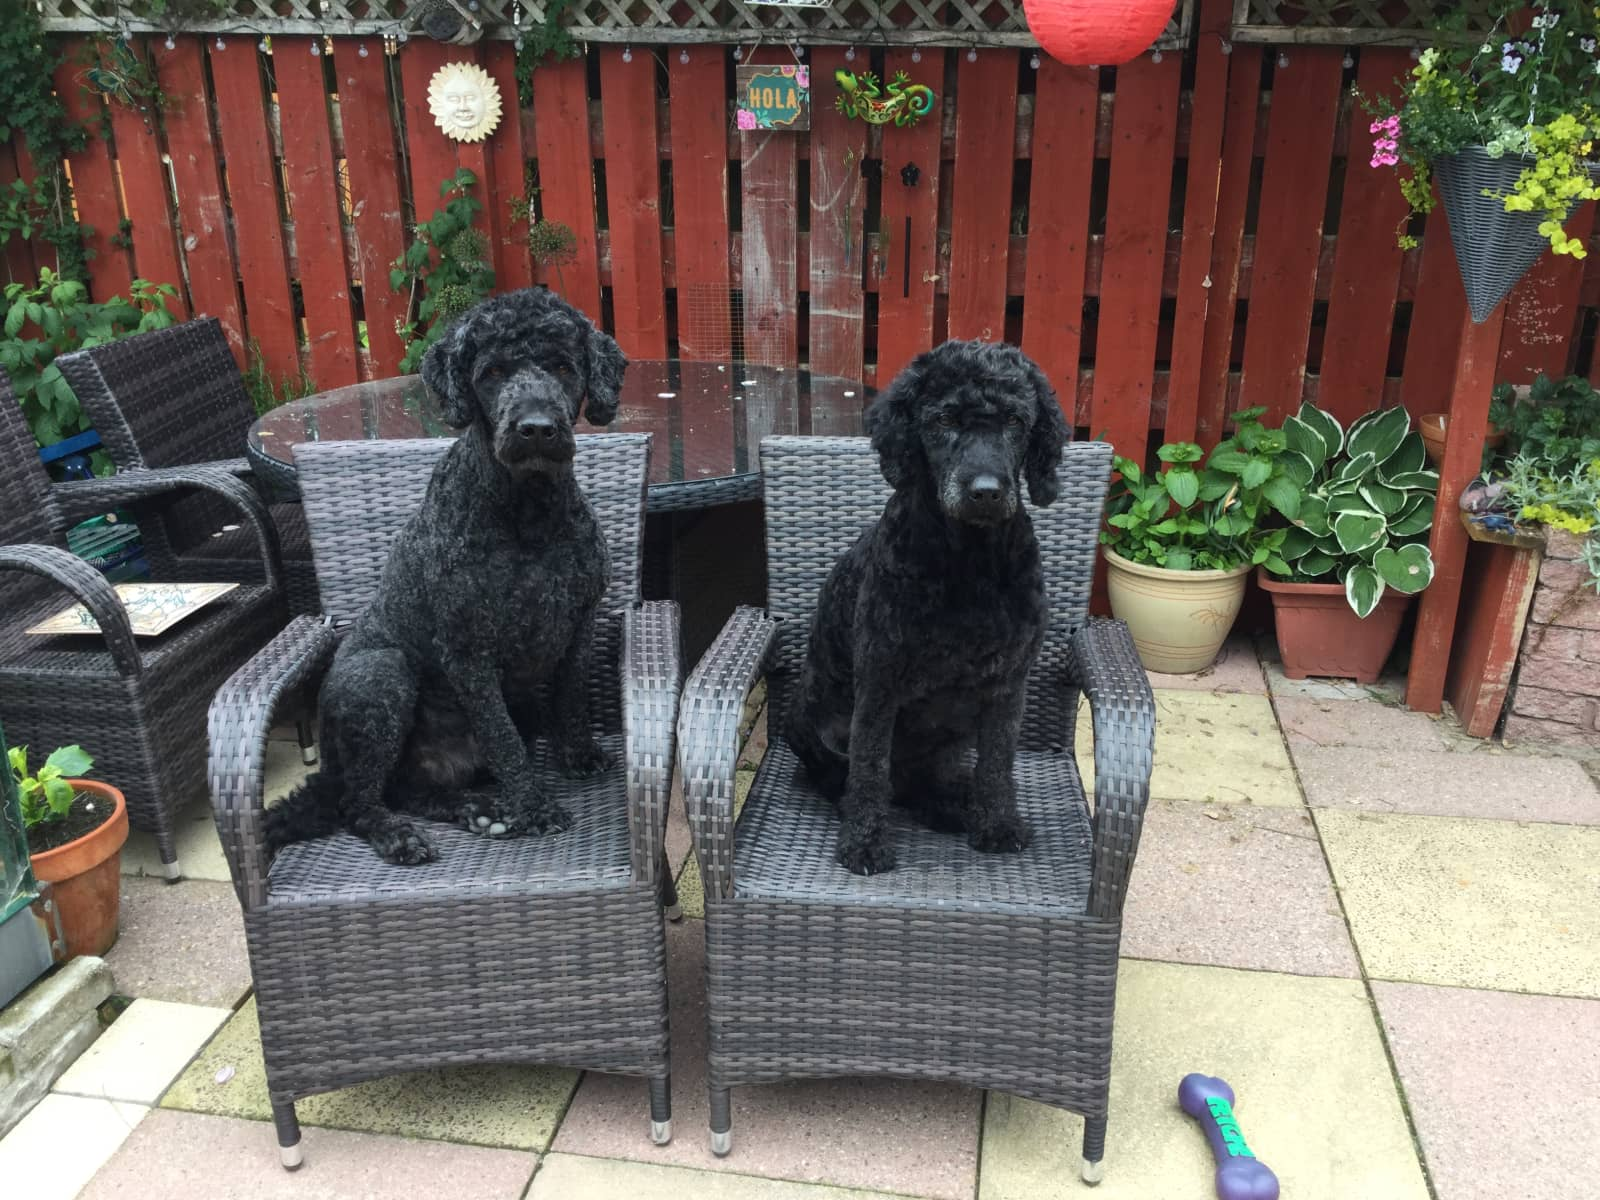 Denise & Franz from Inverness, United Kingdom